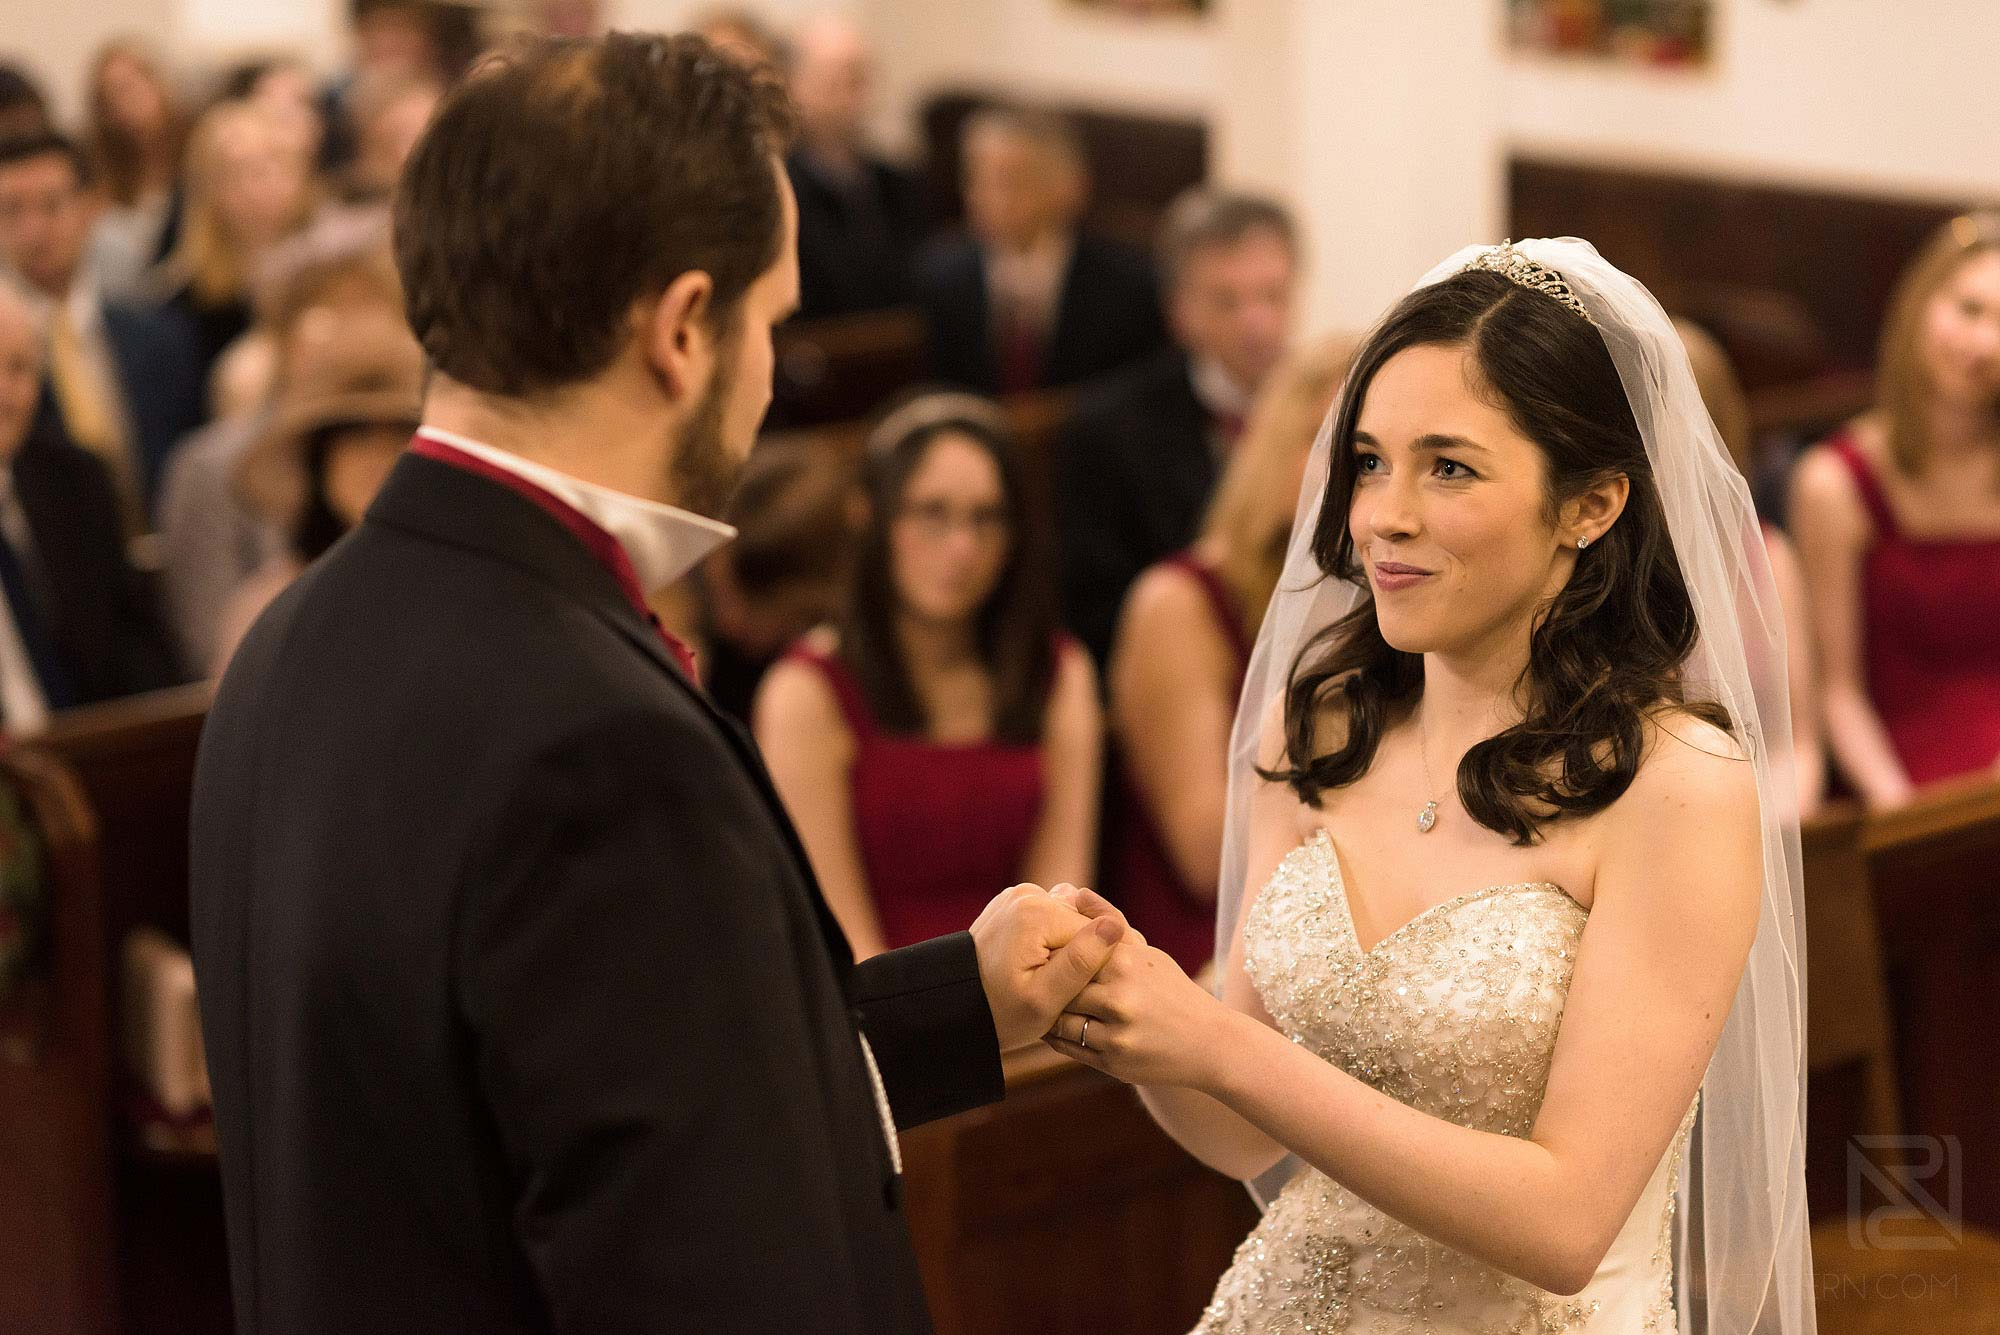 bride and groom during wedding ceremony at St James Church in Didsbury